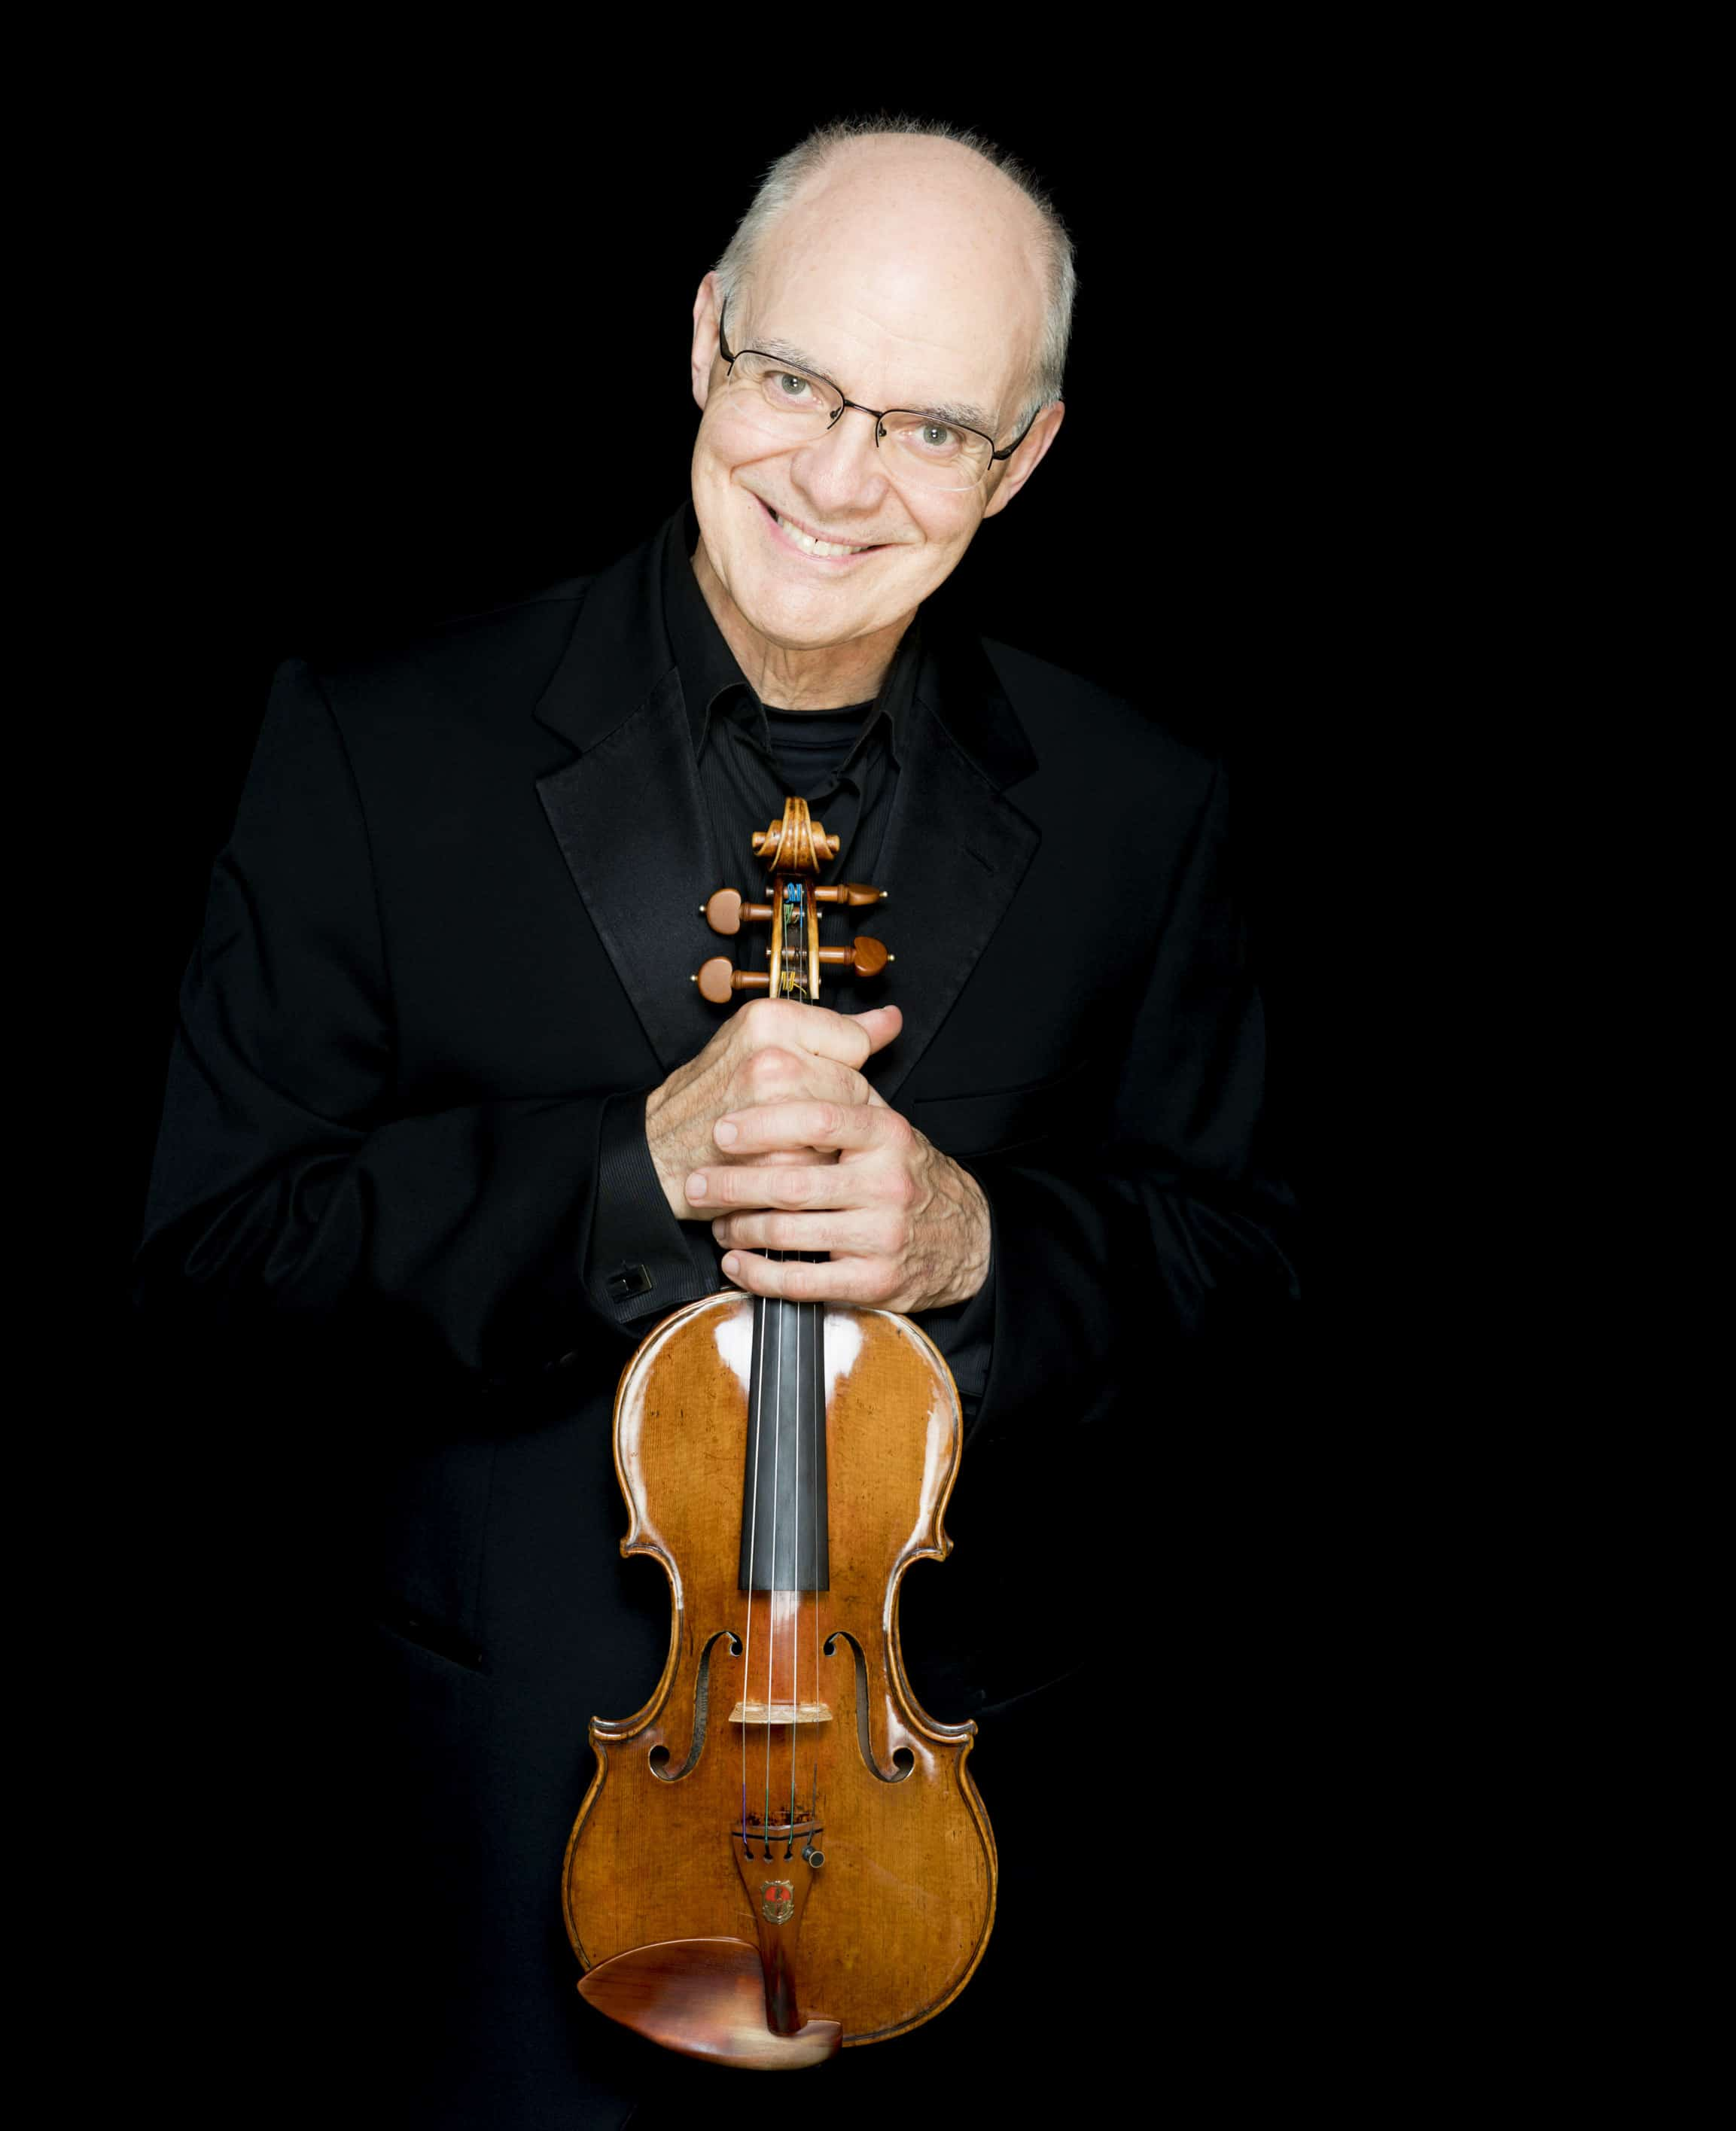 Boston explains the mystery of the missing concertmaster